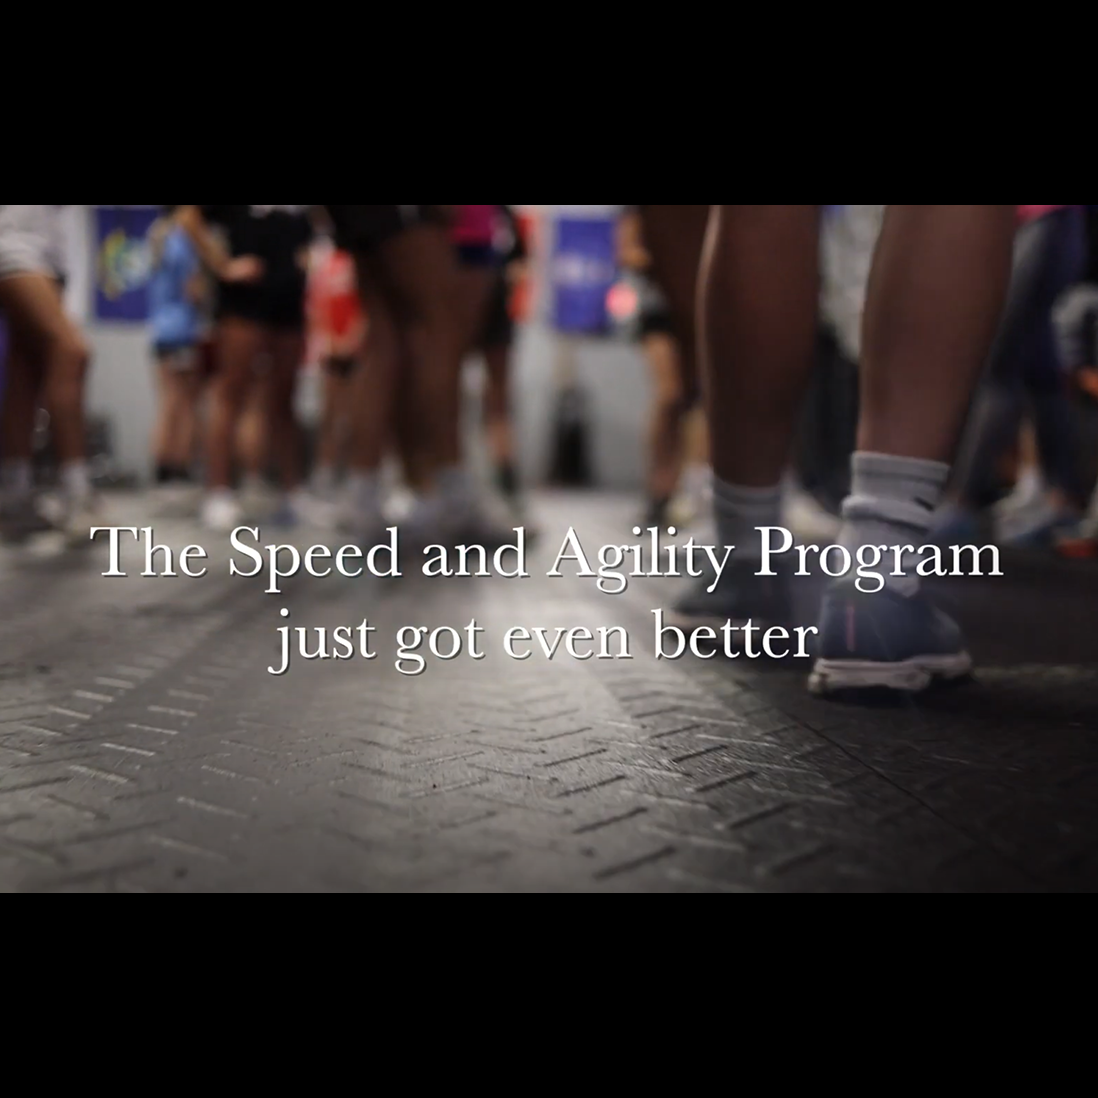 The Speed and Agility Program now has more power!